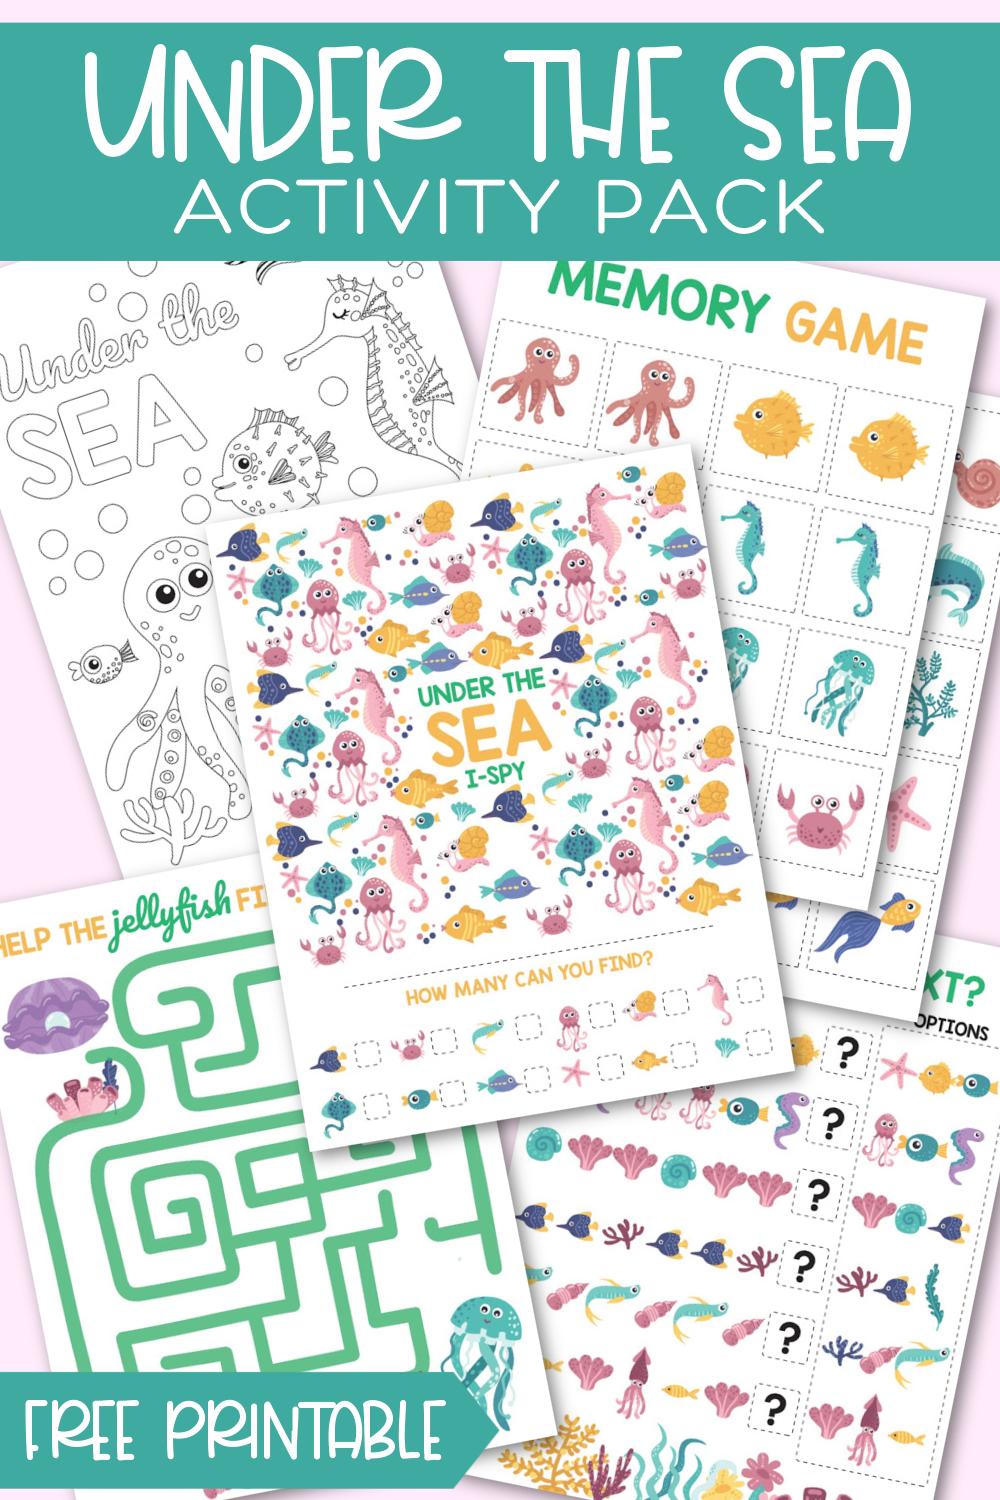 Under the Sea Activity Pack Free Printable